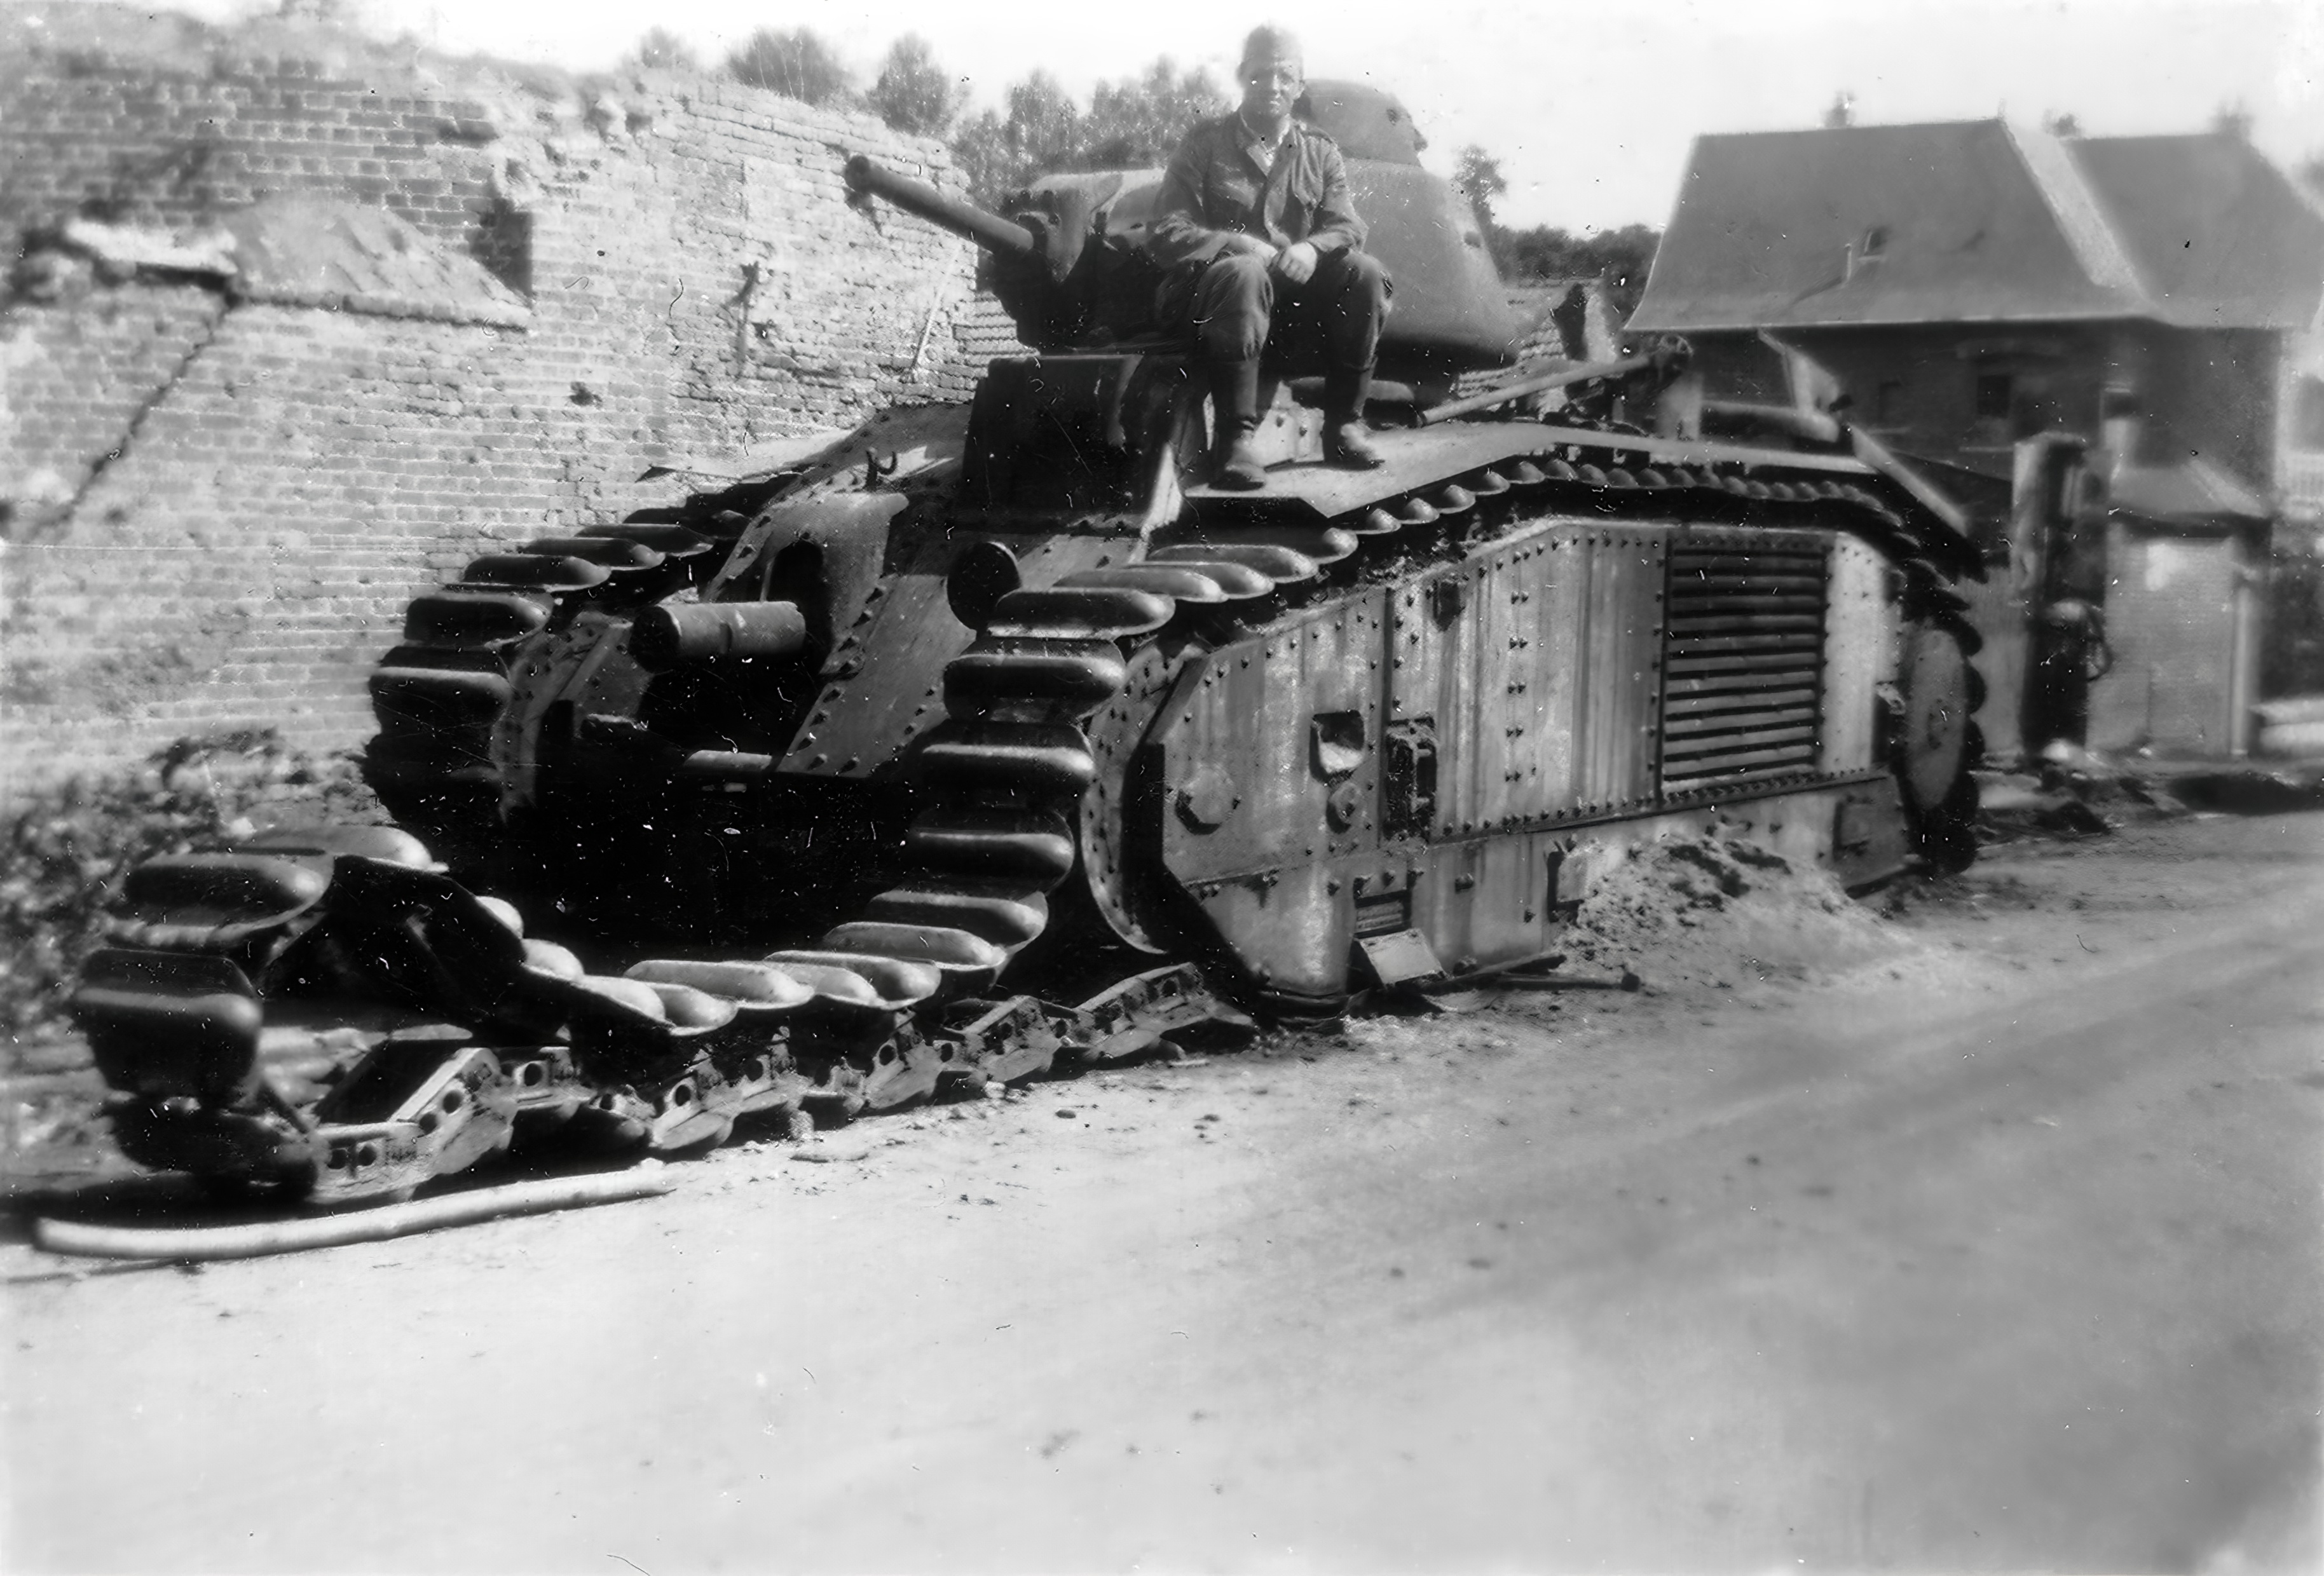 French Army Renault Char B1bis knocked out Saint Simon France May 1940 ebay 02